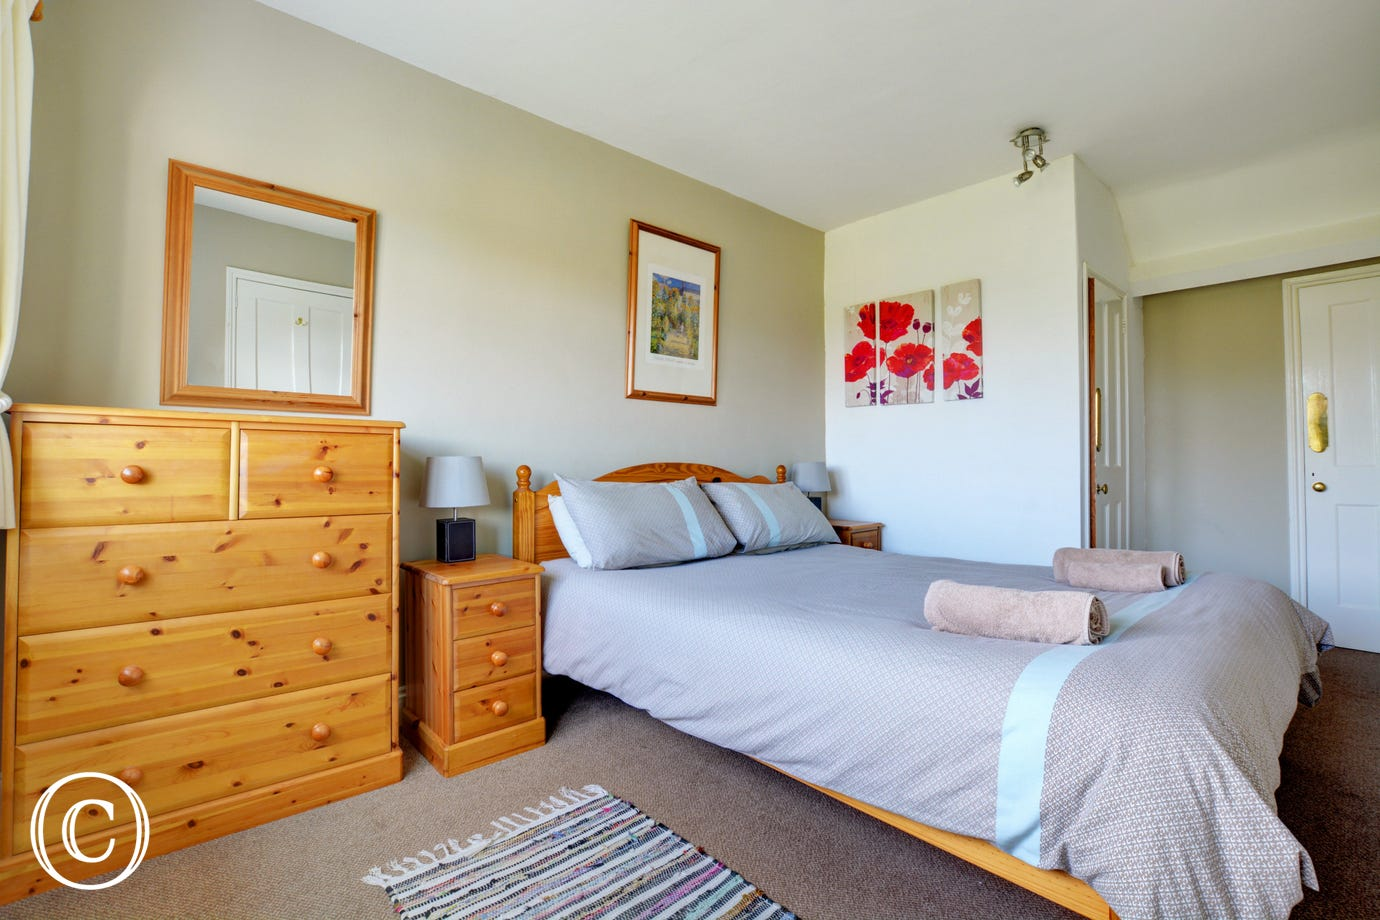 Double room, nicely furnished with storage and the convenience of an en suite shower room